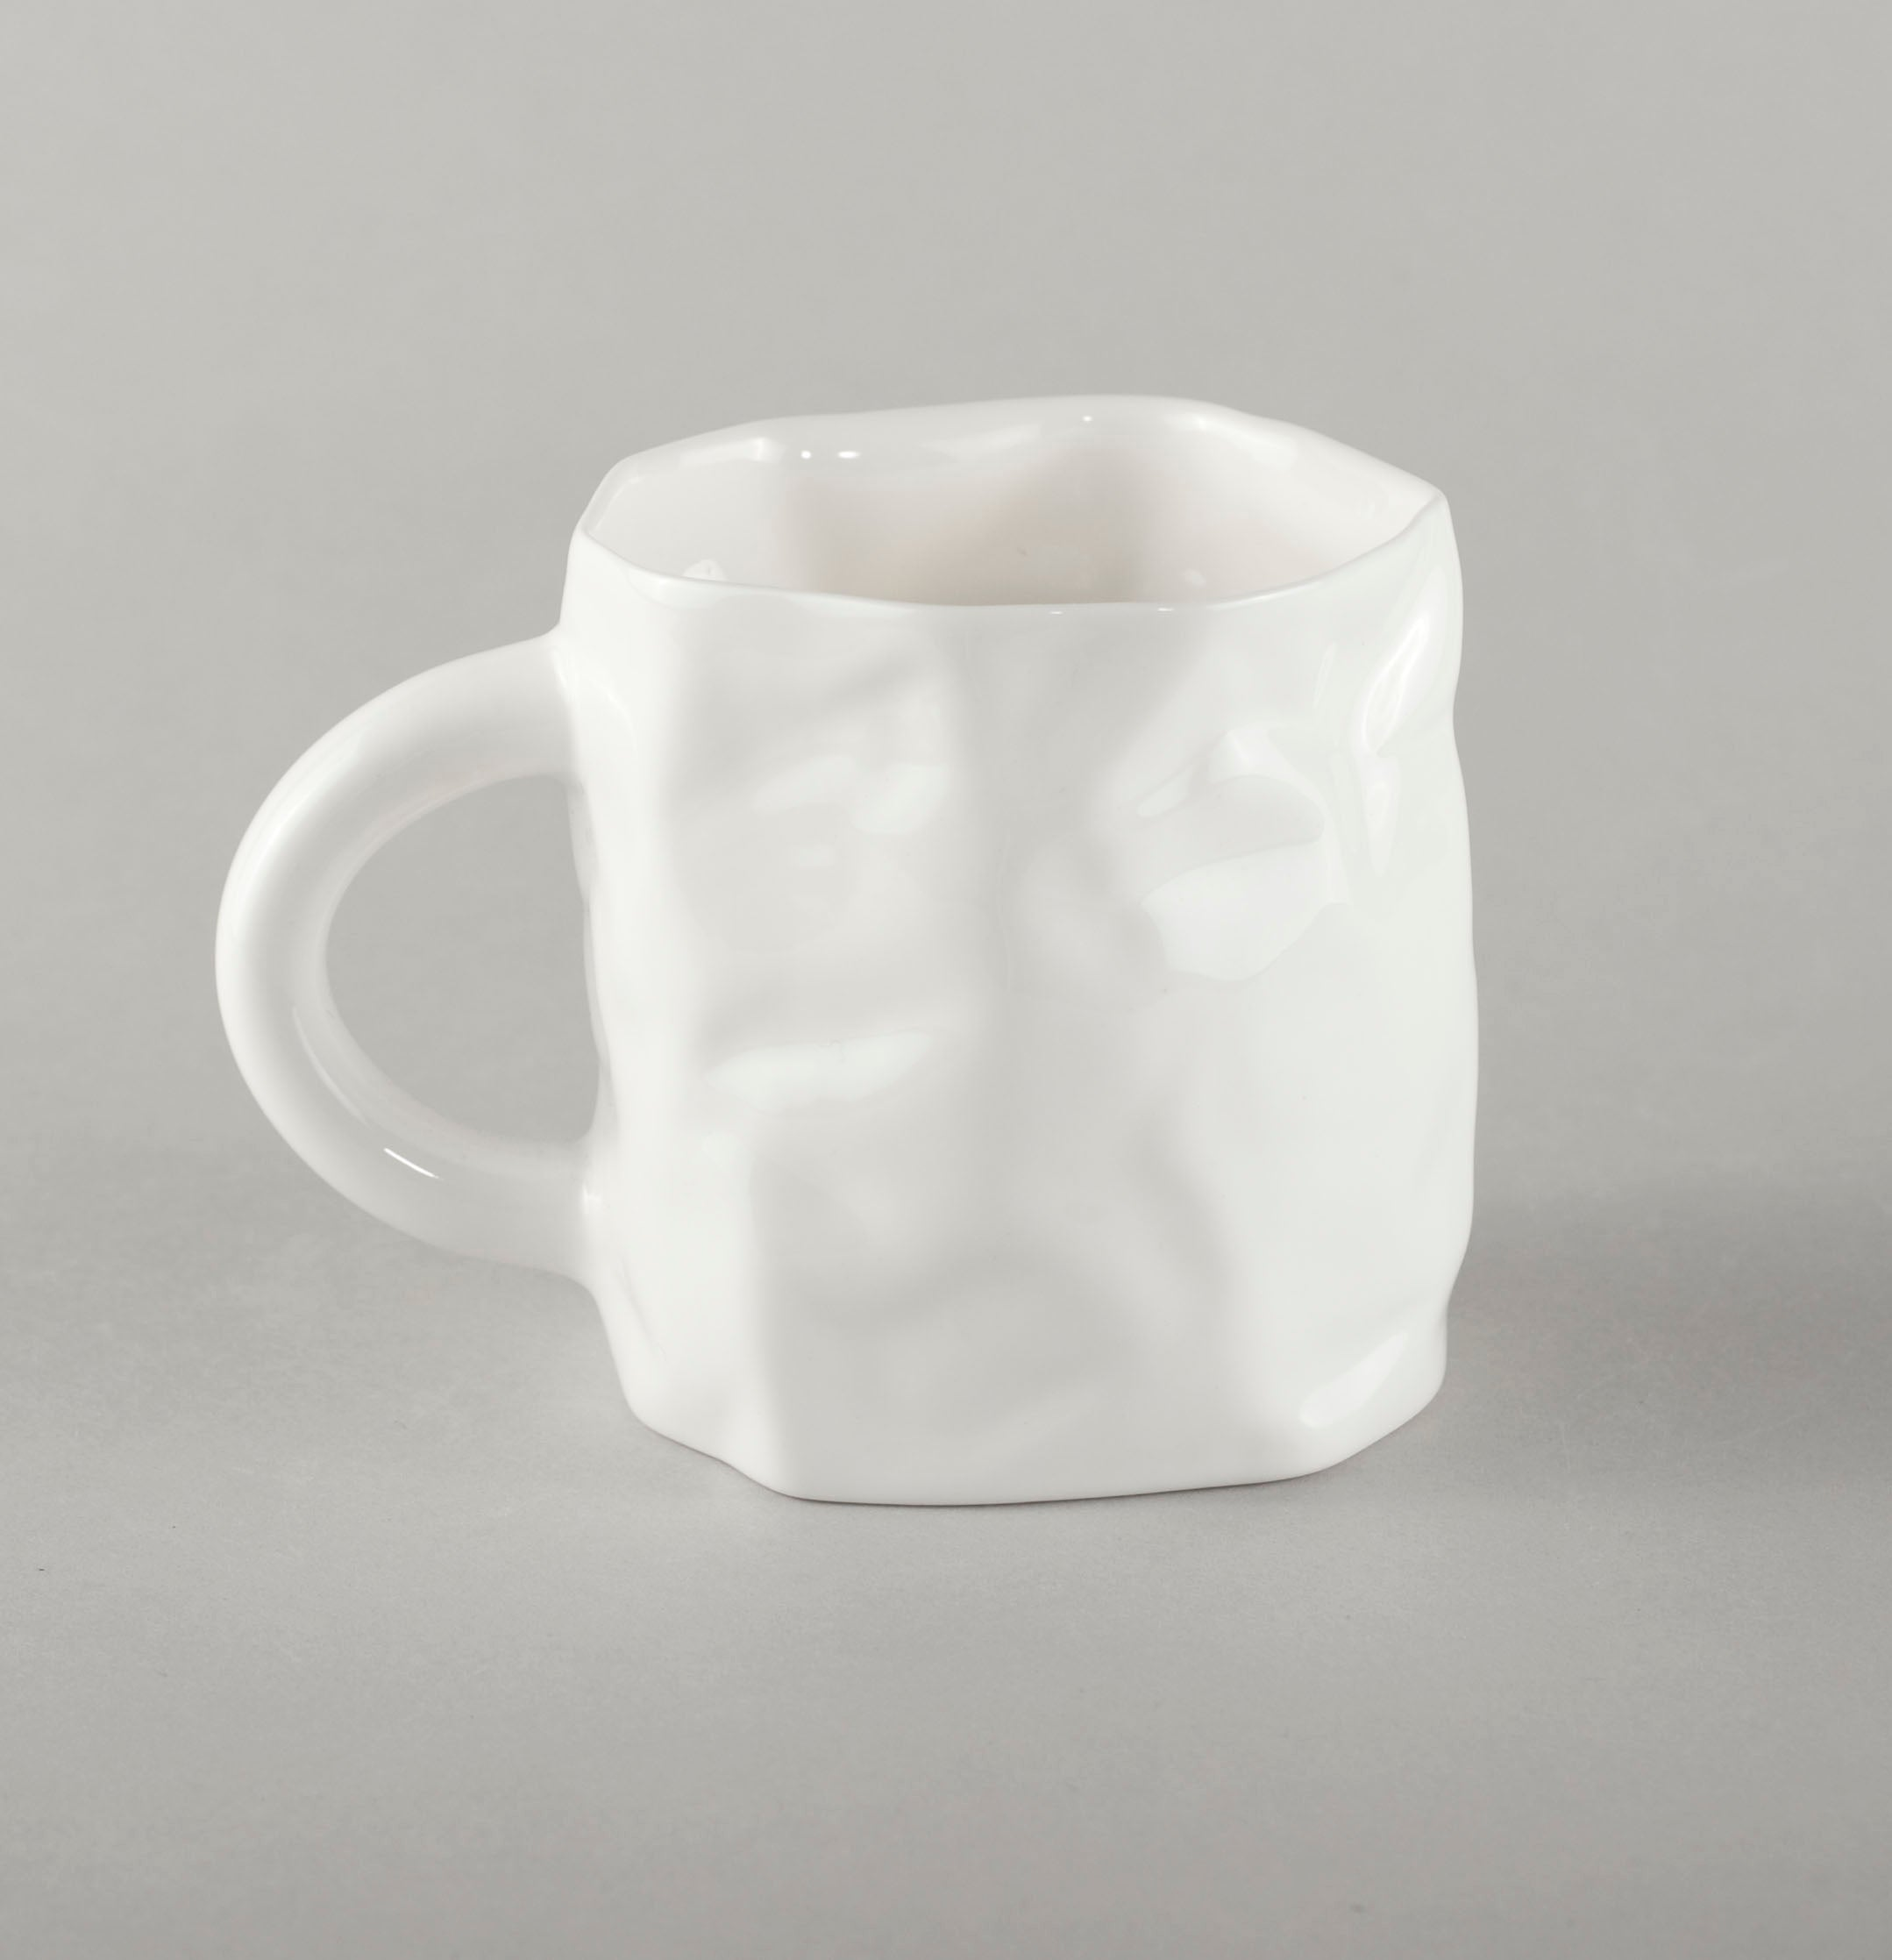 Porcelain Crumpled Coffee Mug